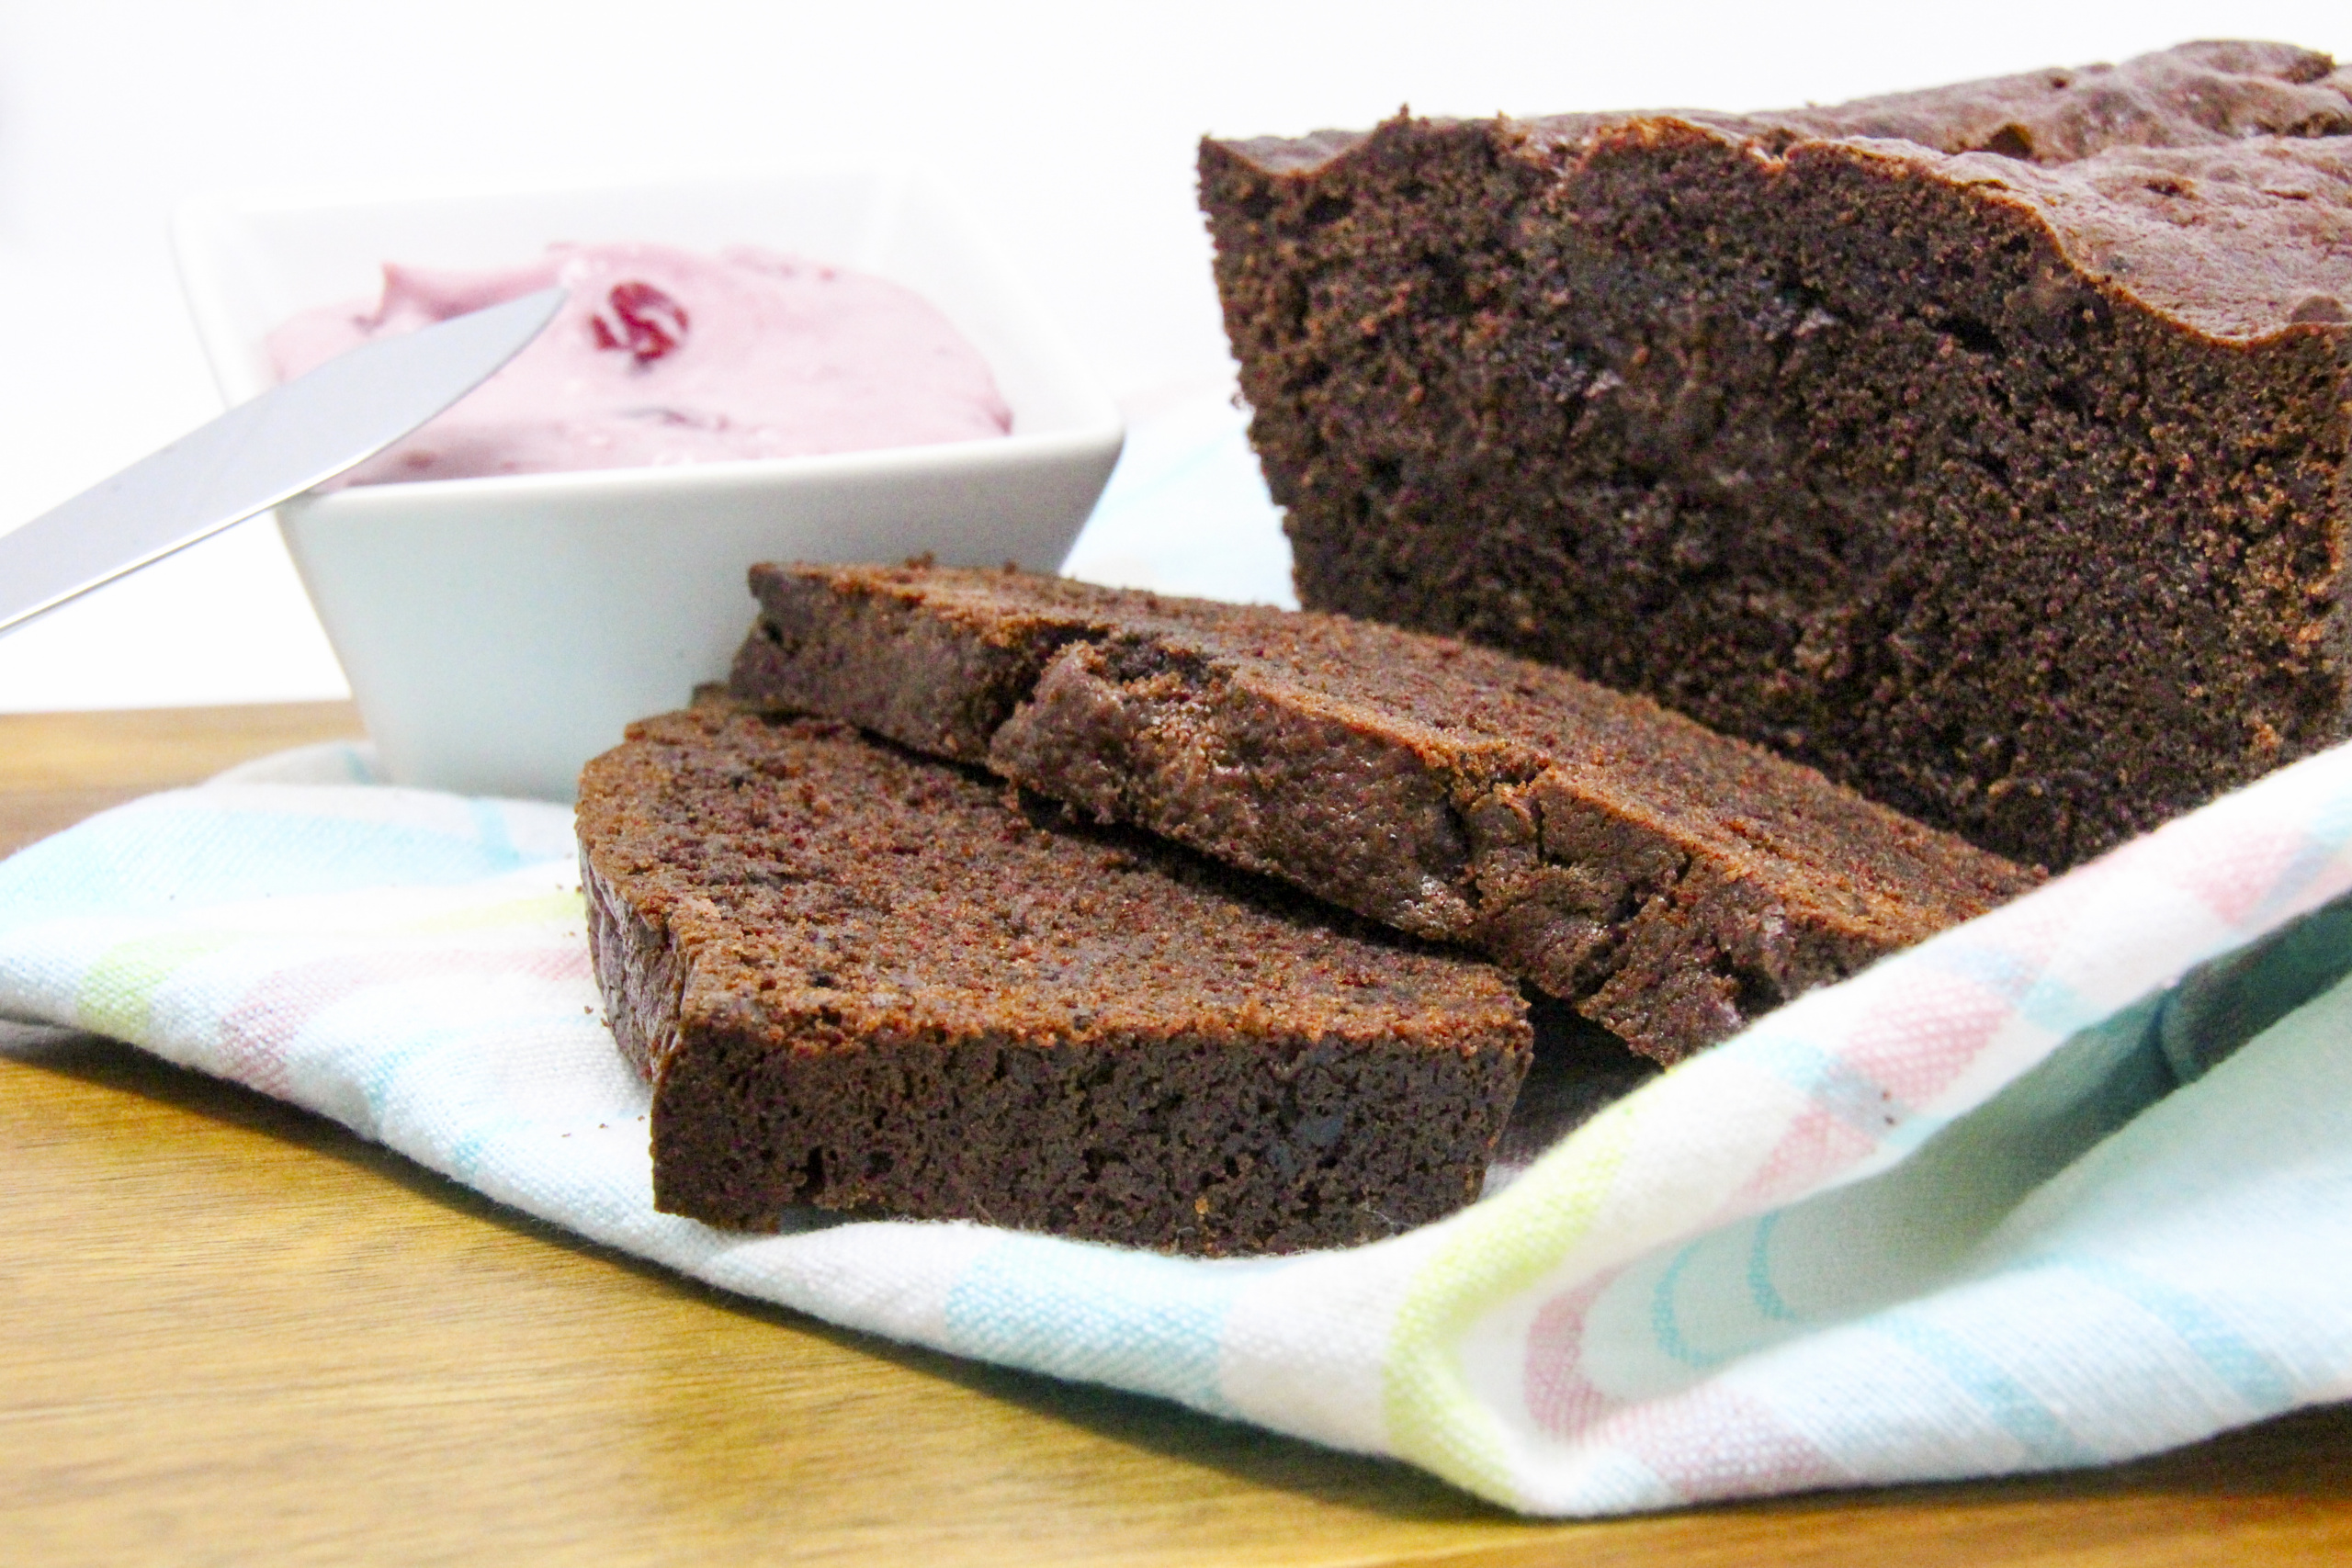 Super rich and super chocolaty, Gluten-Free Chocolate Loaf with Cherry Mascarpone Filling (or spread) ratcheted up the yum factor! A delectable treat for brunch, afternoon tea, or for anytime you feel like spoiling yourself! Recipe shared with permission granted by Libby Klein, author of BEAUTY EXPOS ARE MURDER.